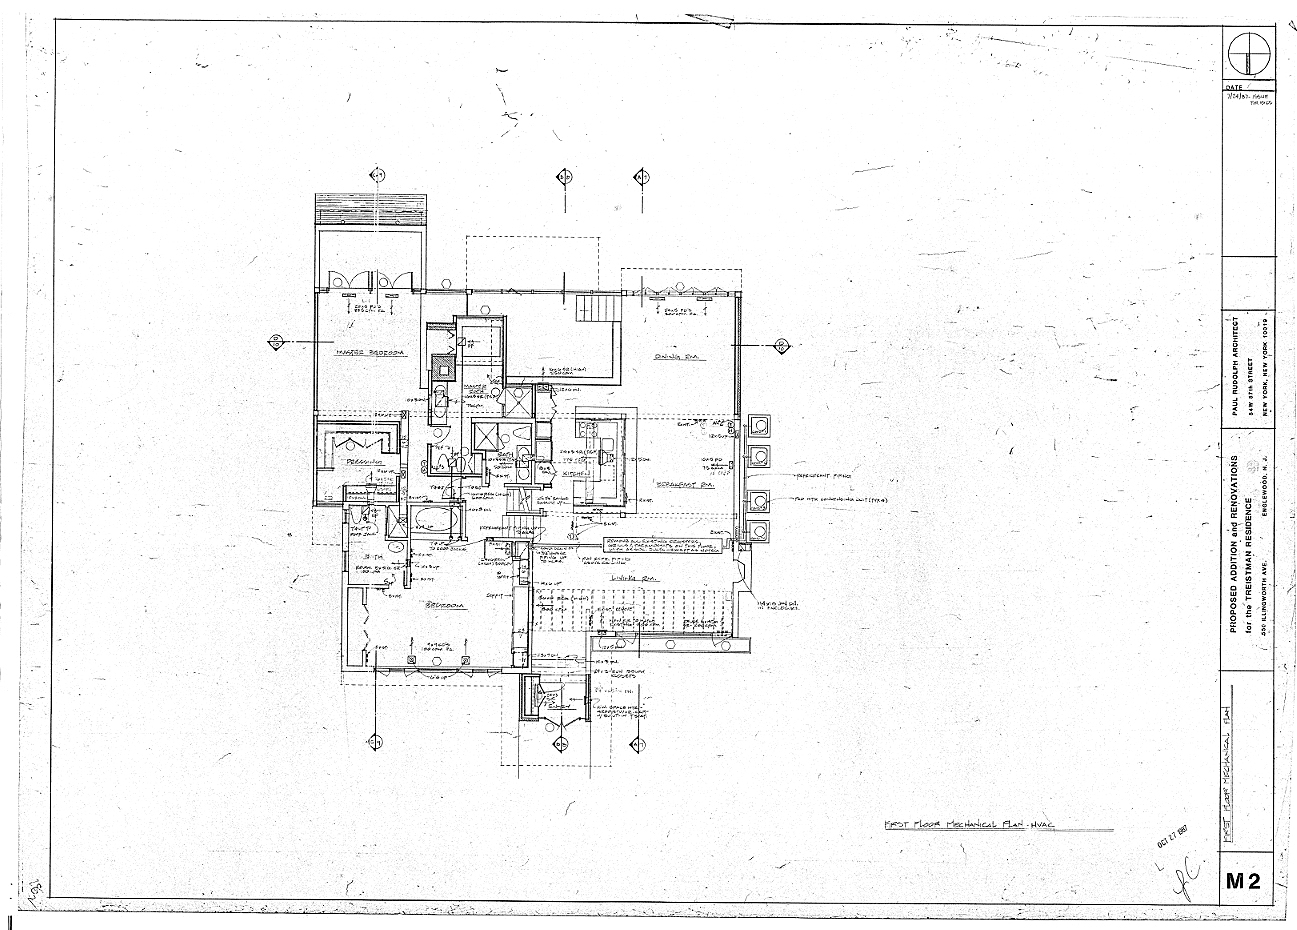 Residence for Mr. and Mrs. Treistman, Englewood, New Jersey.  First Floor Level, Sheet M2.